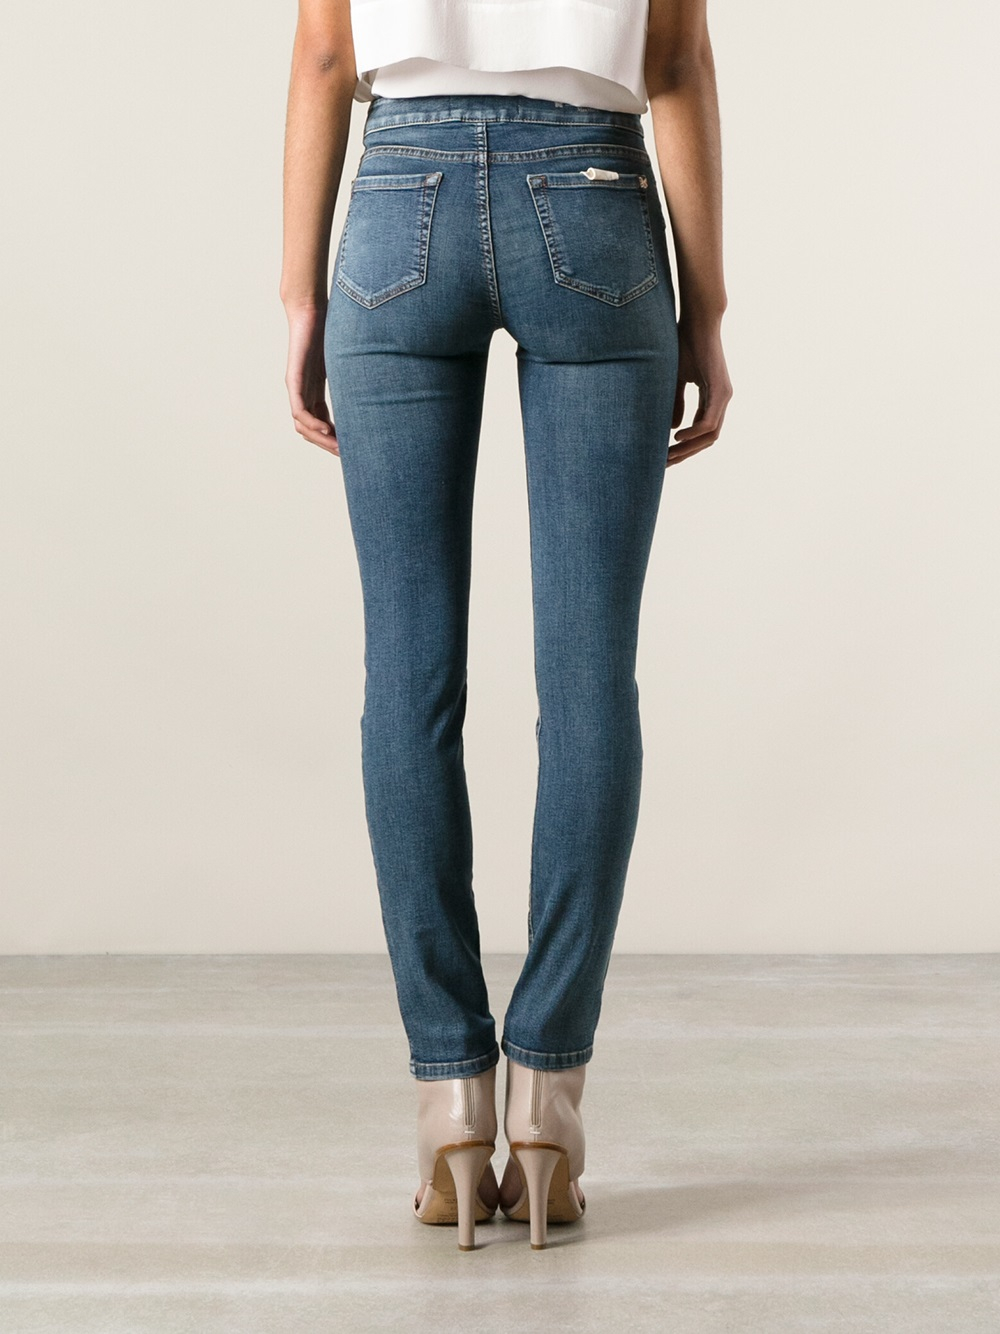 Faded Denim Jeans Womens